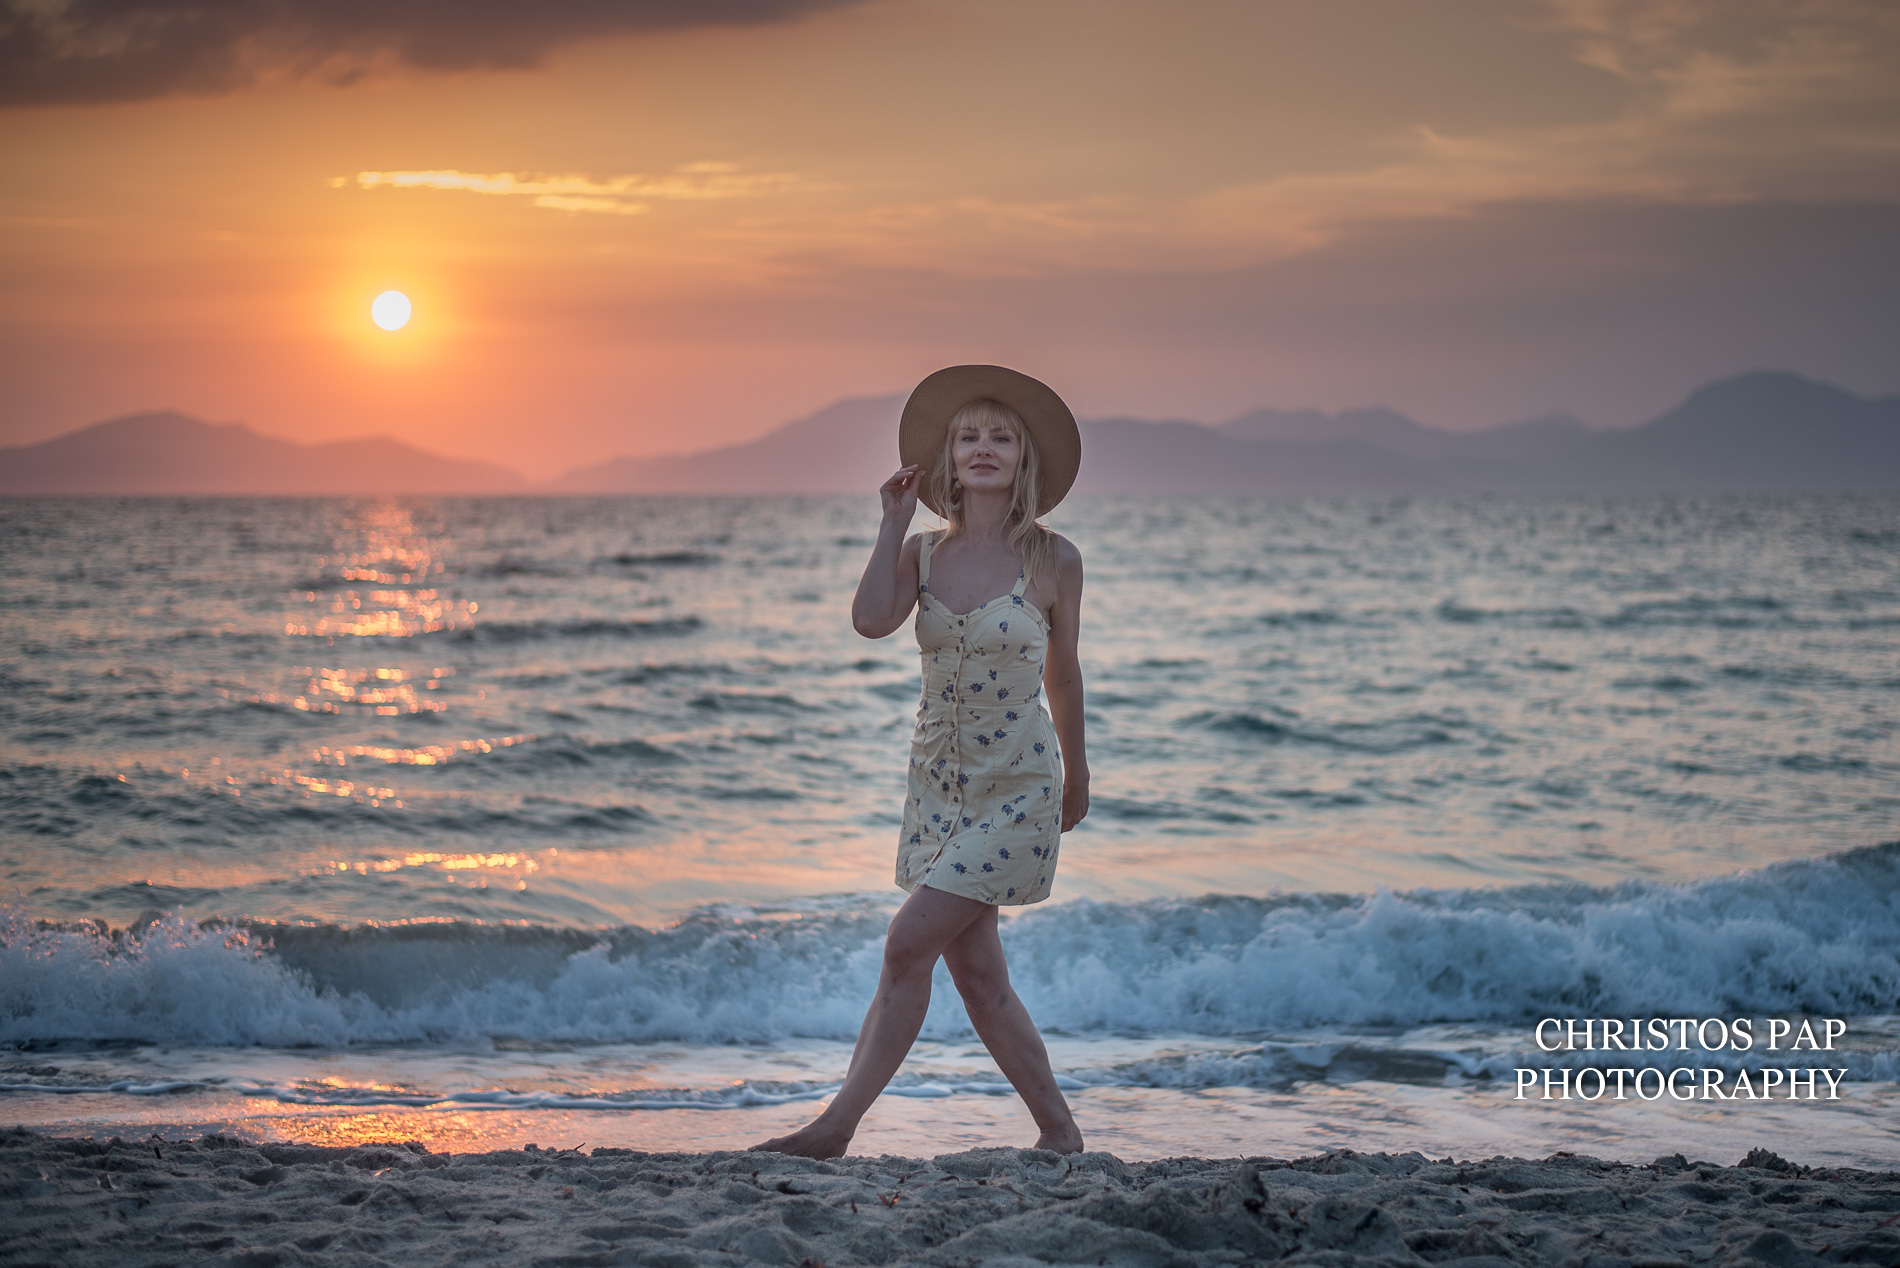 Photo shoot on Kos island